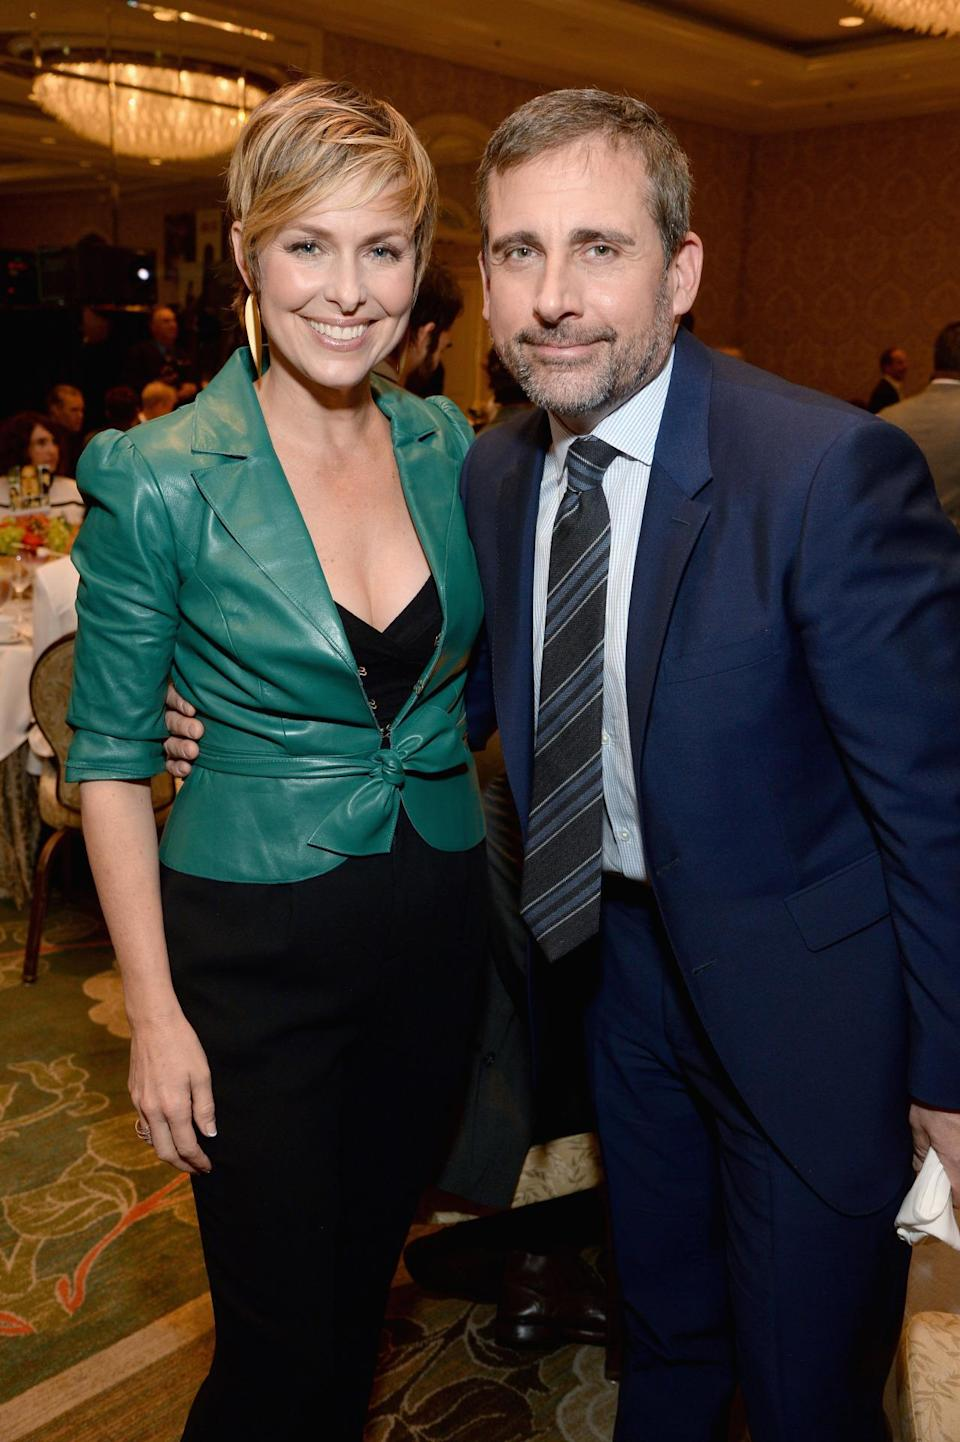 Melora Hardin wears a teal, tight, and leather top while Steve Carrell goes for understated handsomeness.